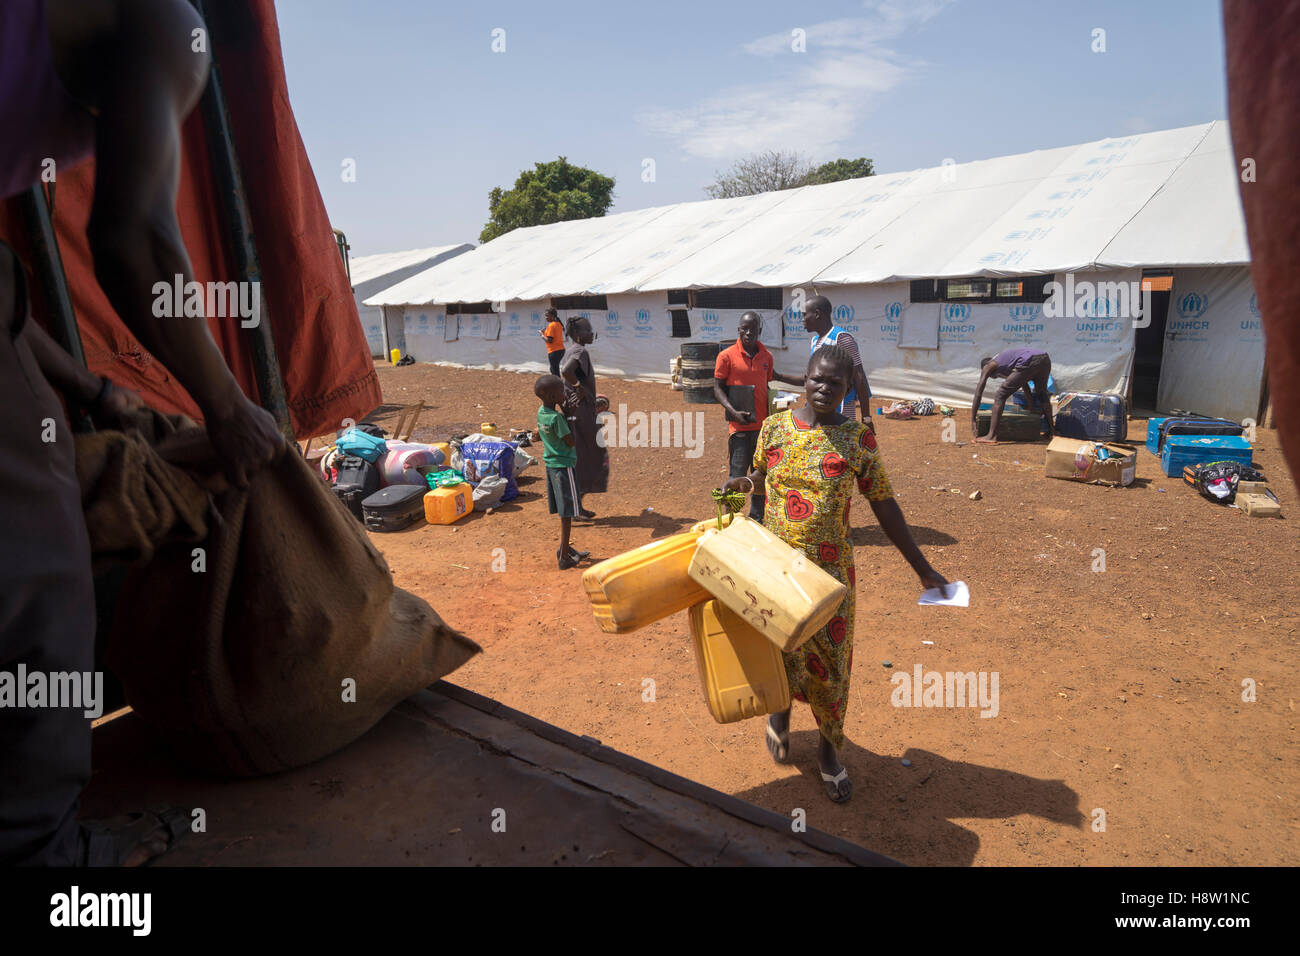 On the South Sudan - Uganda boarders. Luggage from South Sudan refugees loaded on a UNHCR truck, heading to a refugee - Stock Image